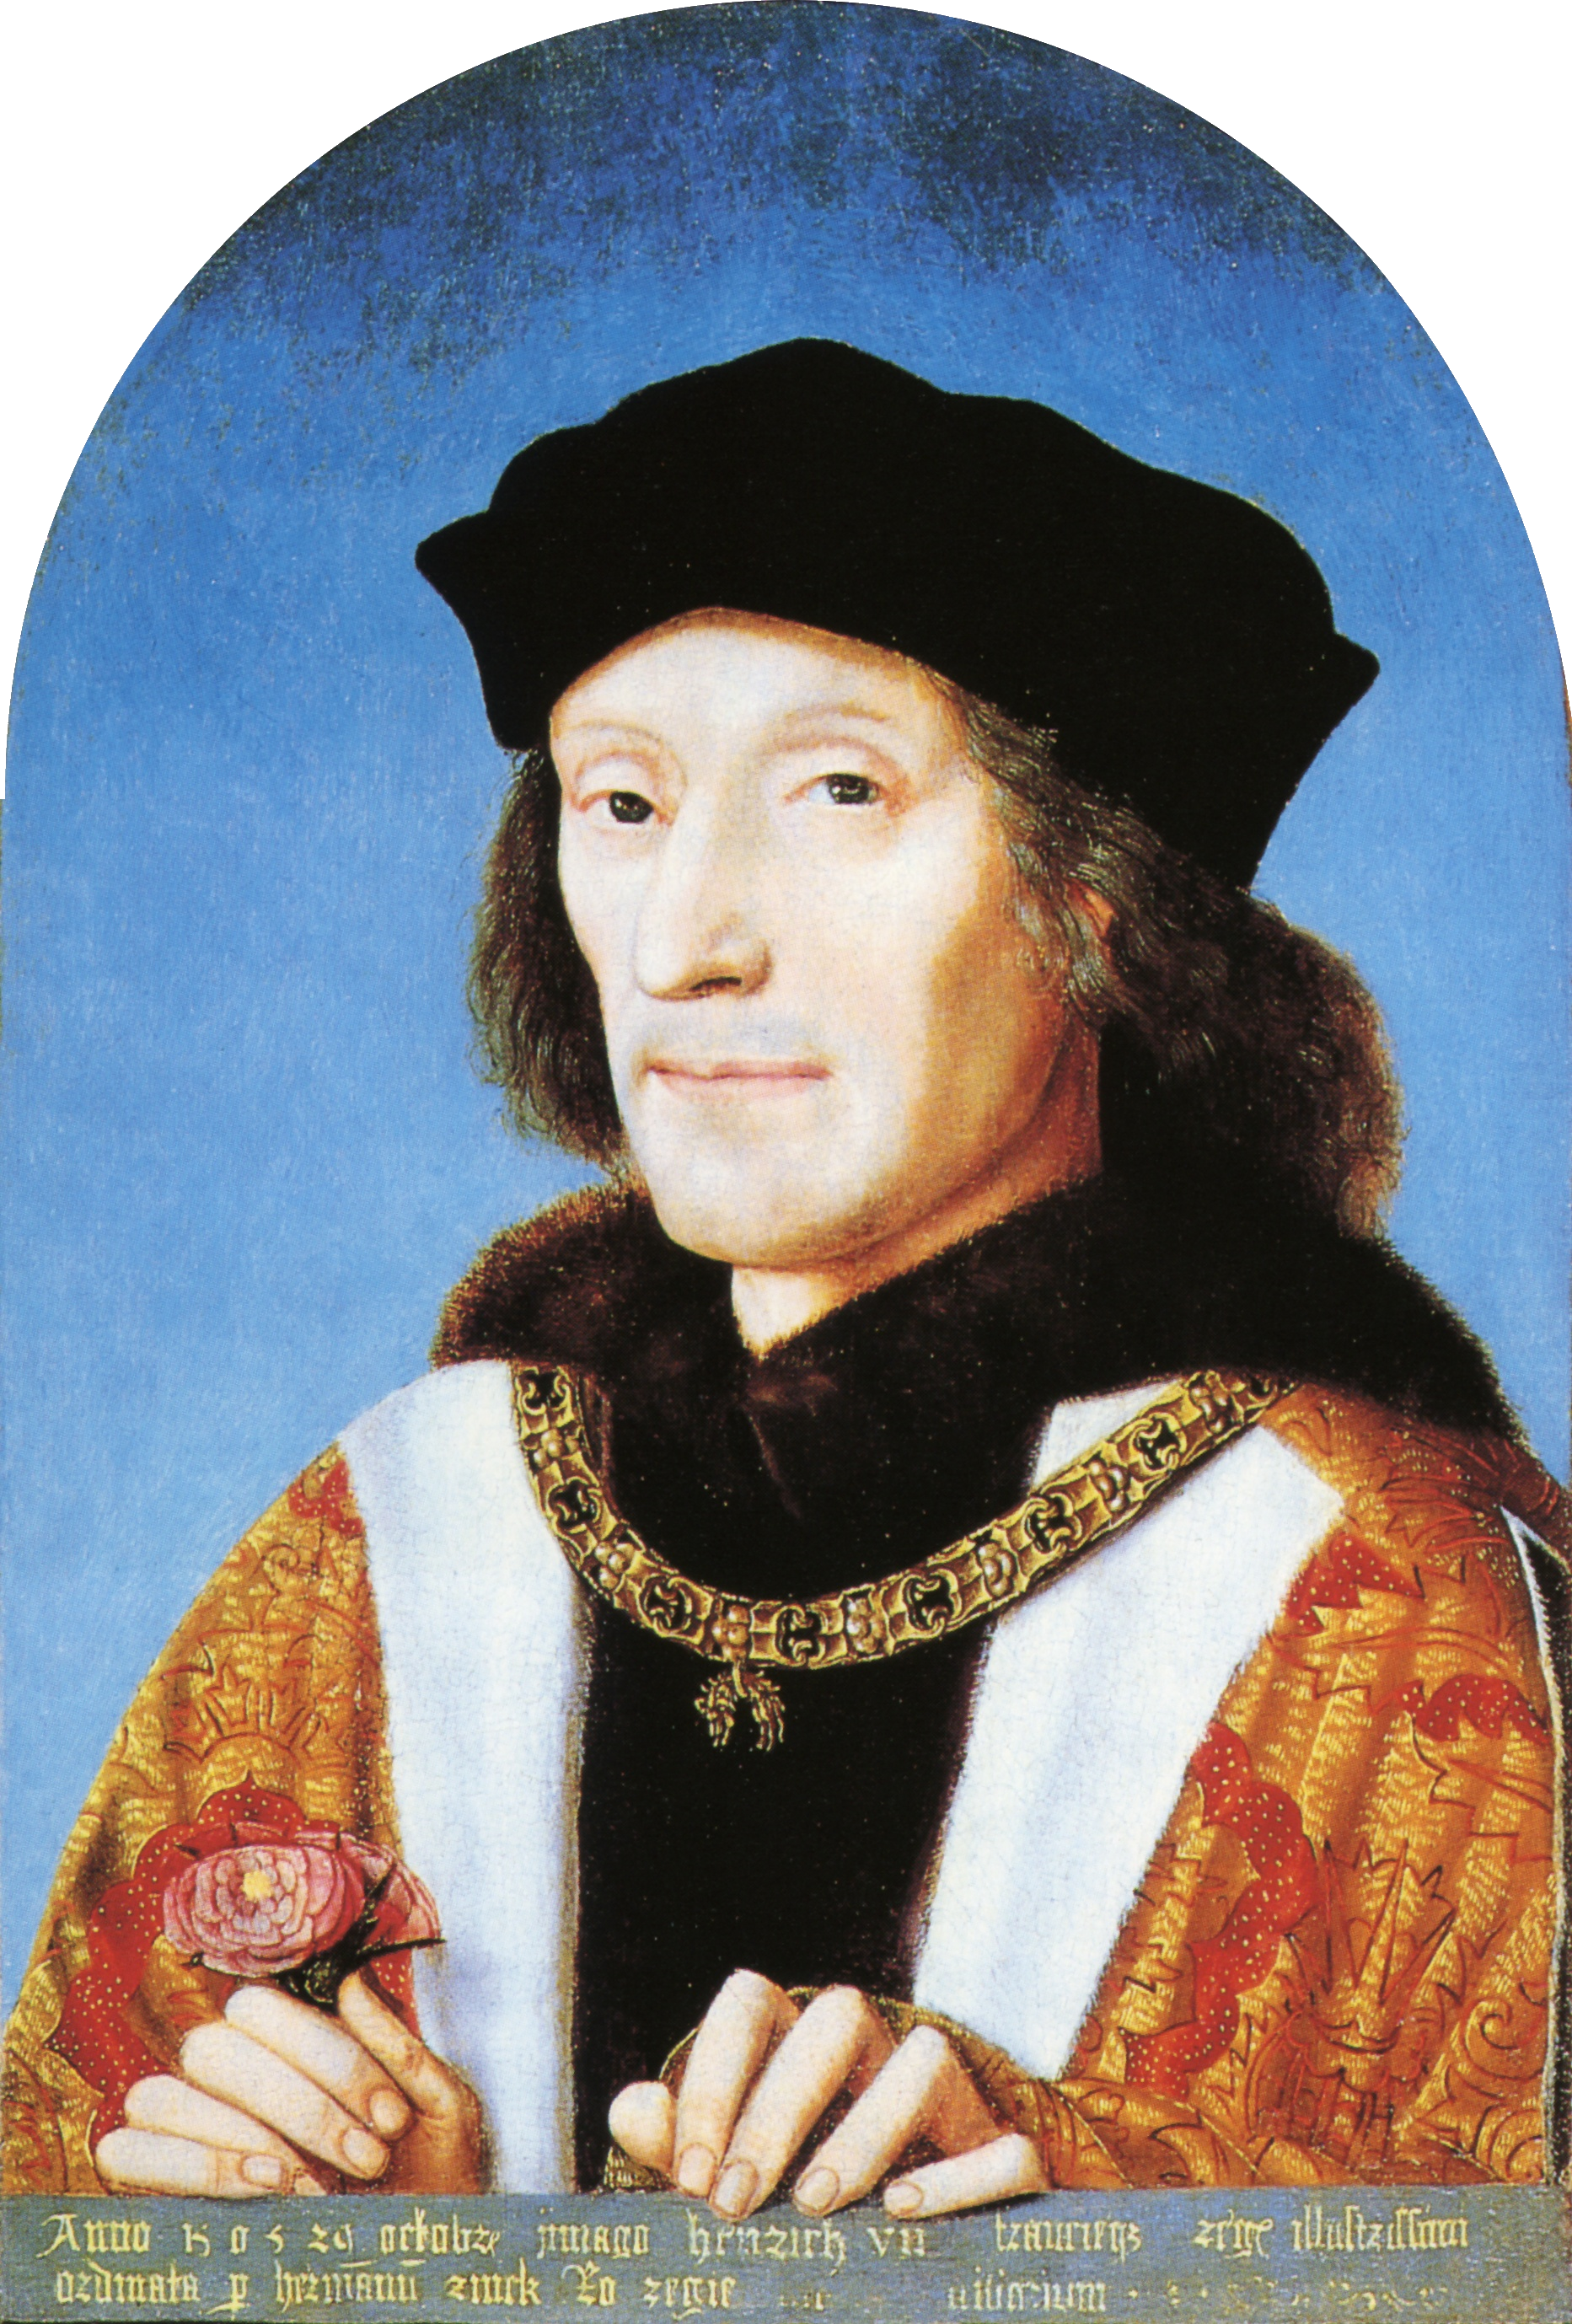 Henry holding a rose and wearing the collar of the Order of the Golden Fleece, by unknown artist, 1505. Text from the National Portrait Gallery catalogue: